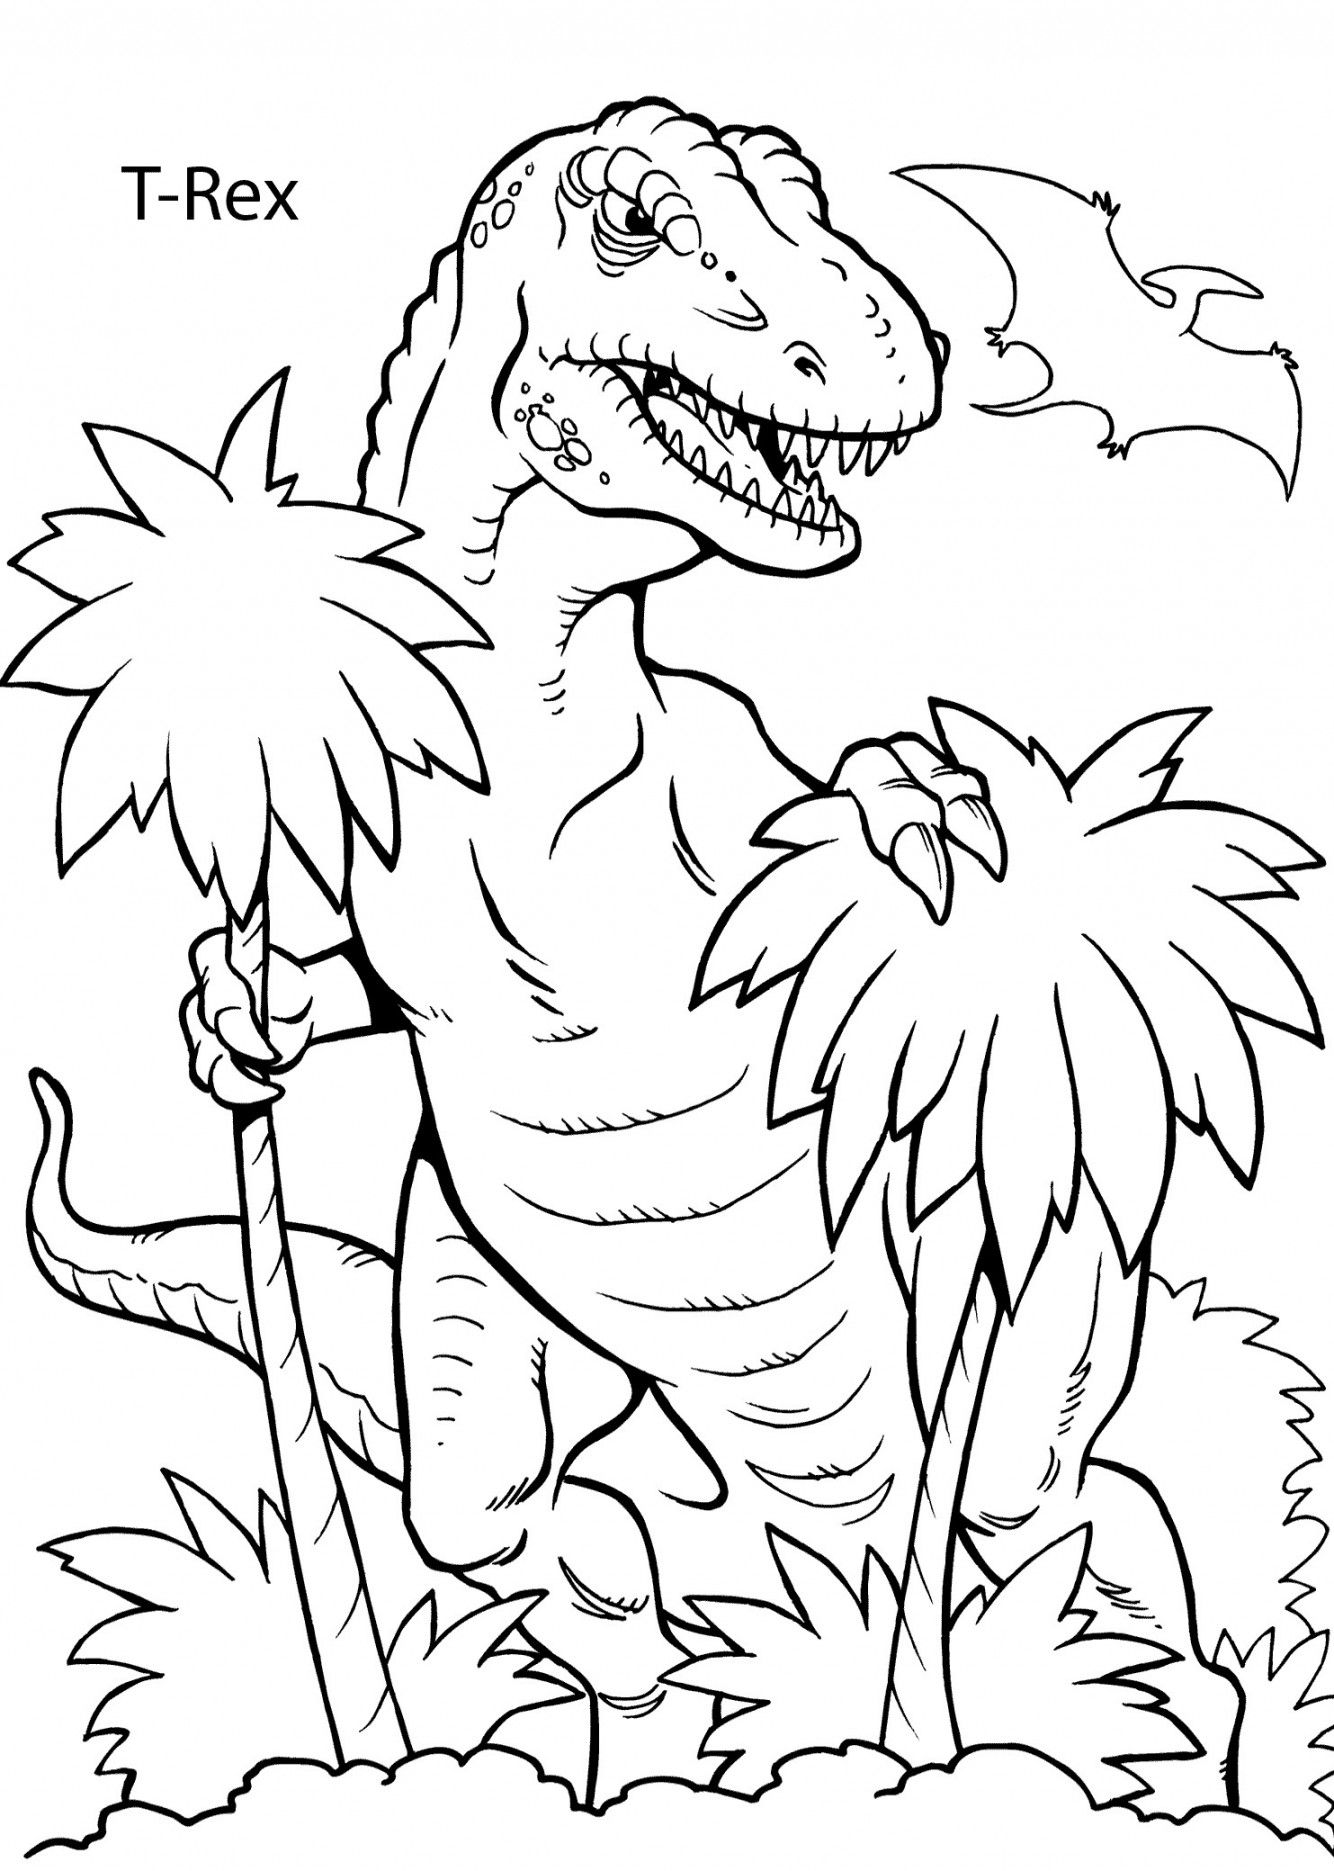 24 Vast Dinosaur King Coloring Page Dinosaur Coloring Pages